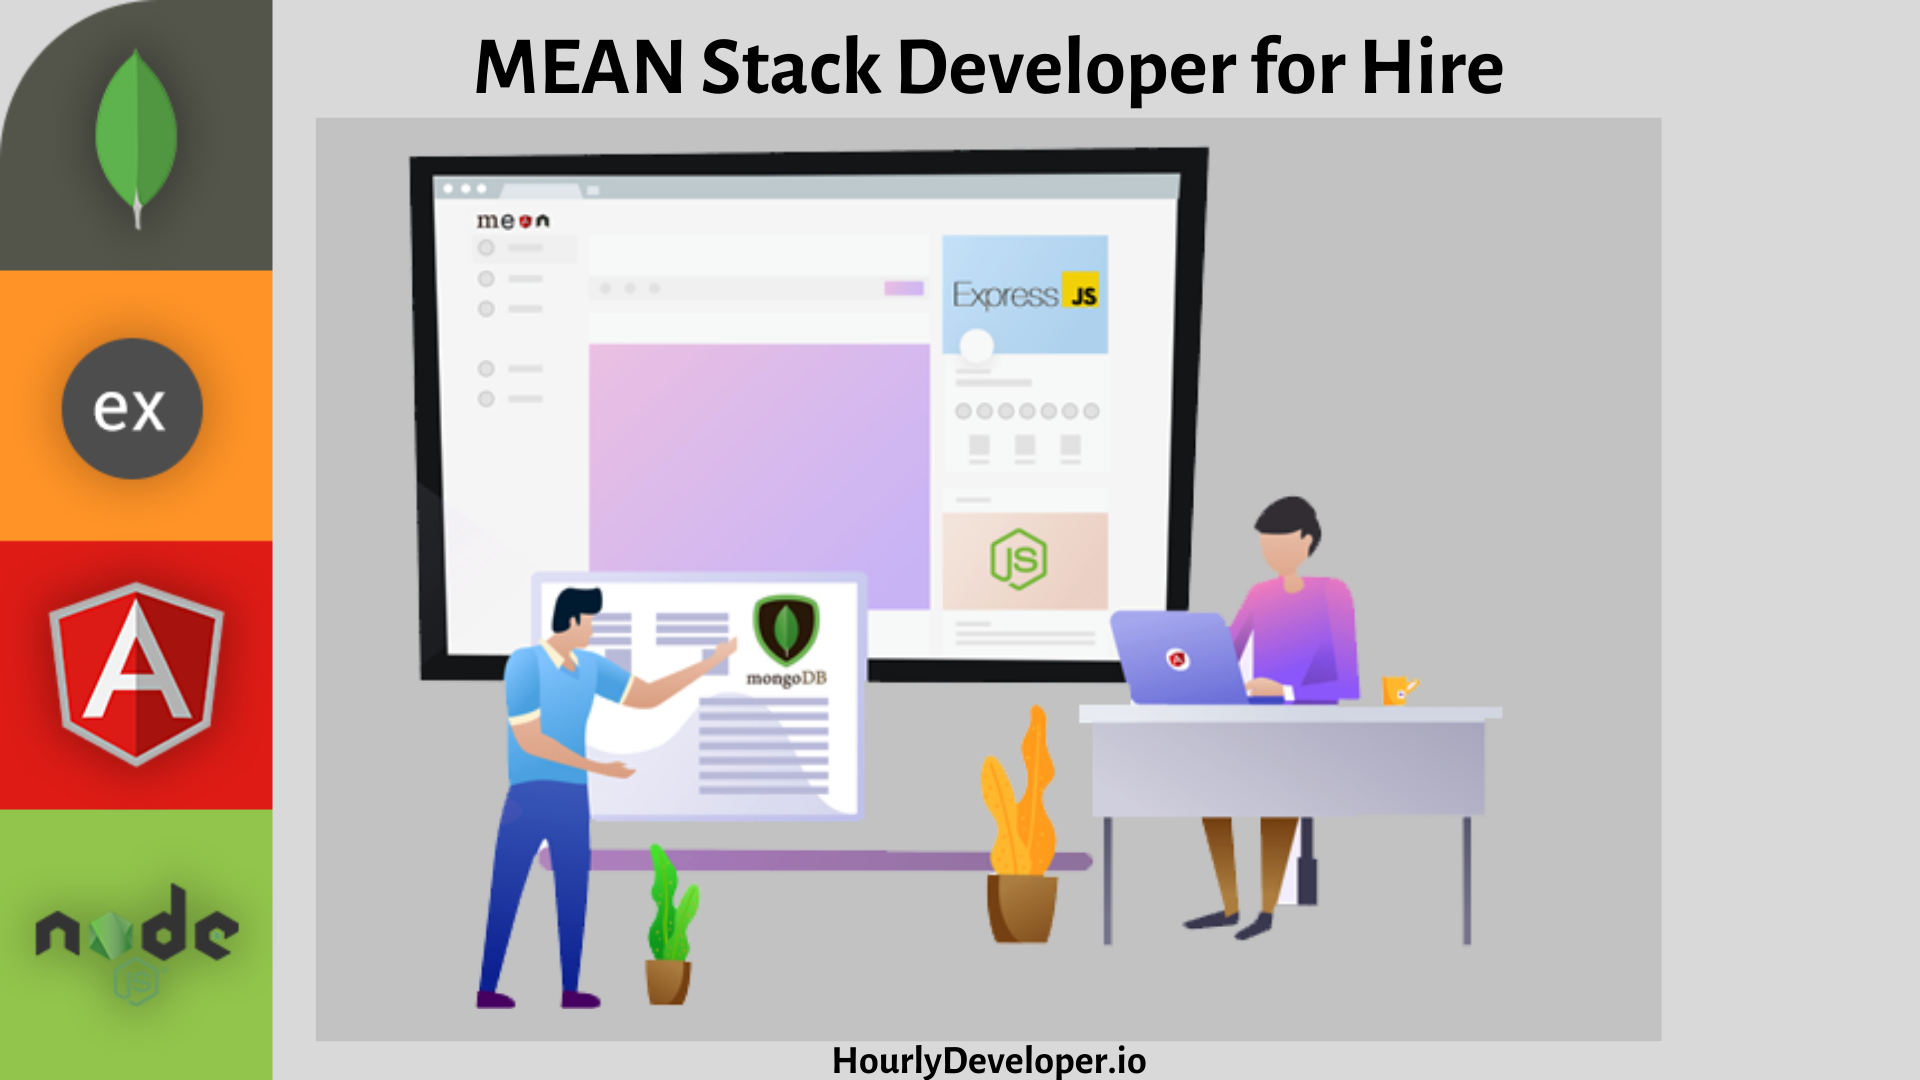 MEAN Stack Developer for Hire